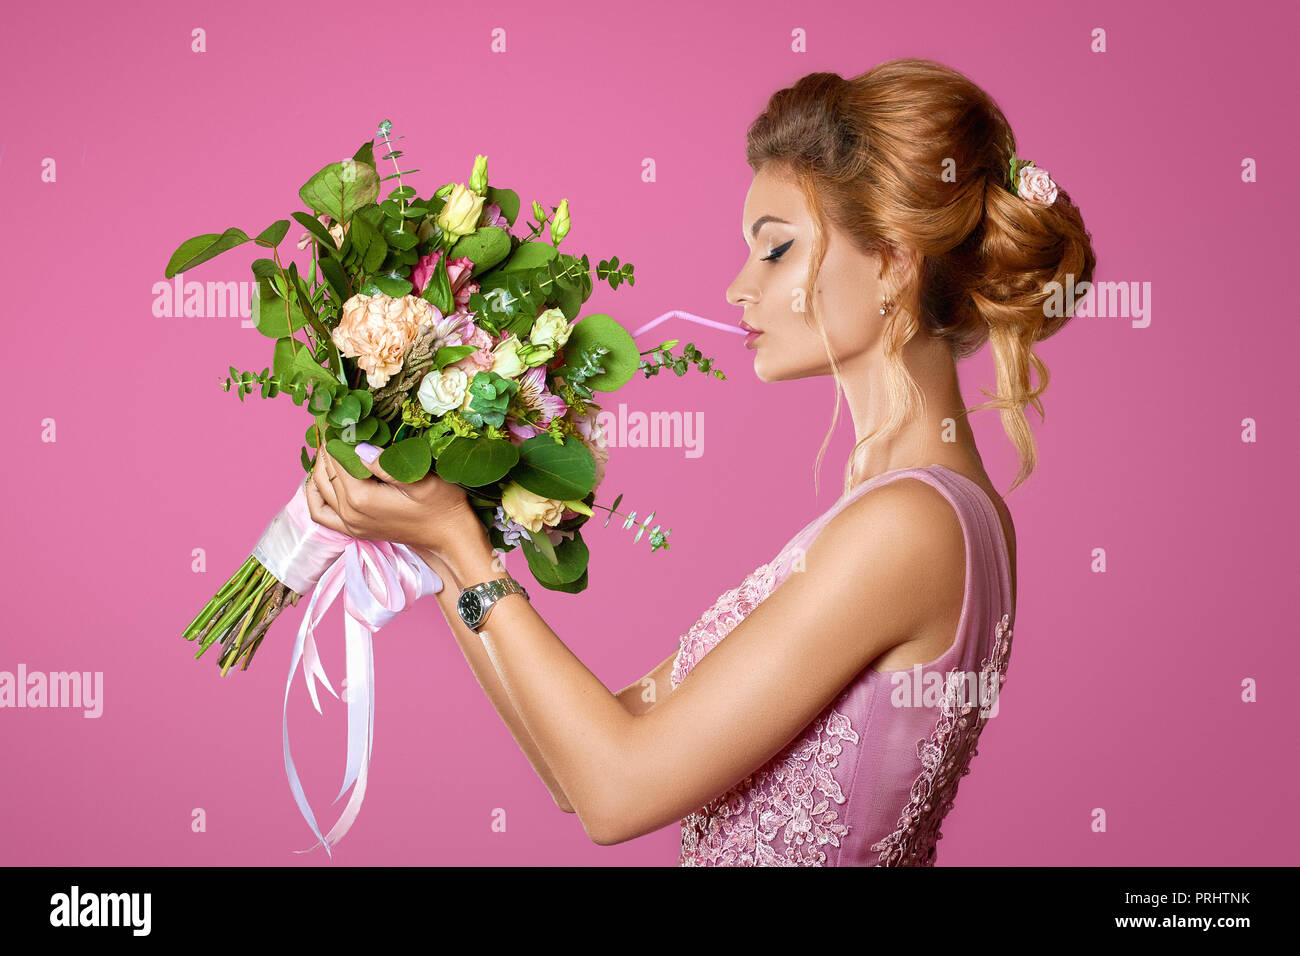 Fashionable model smelling a bouquet flowers on pink background - Stock Image